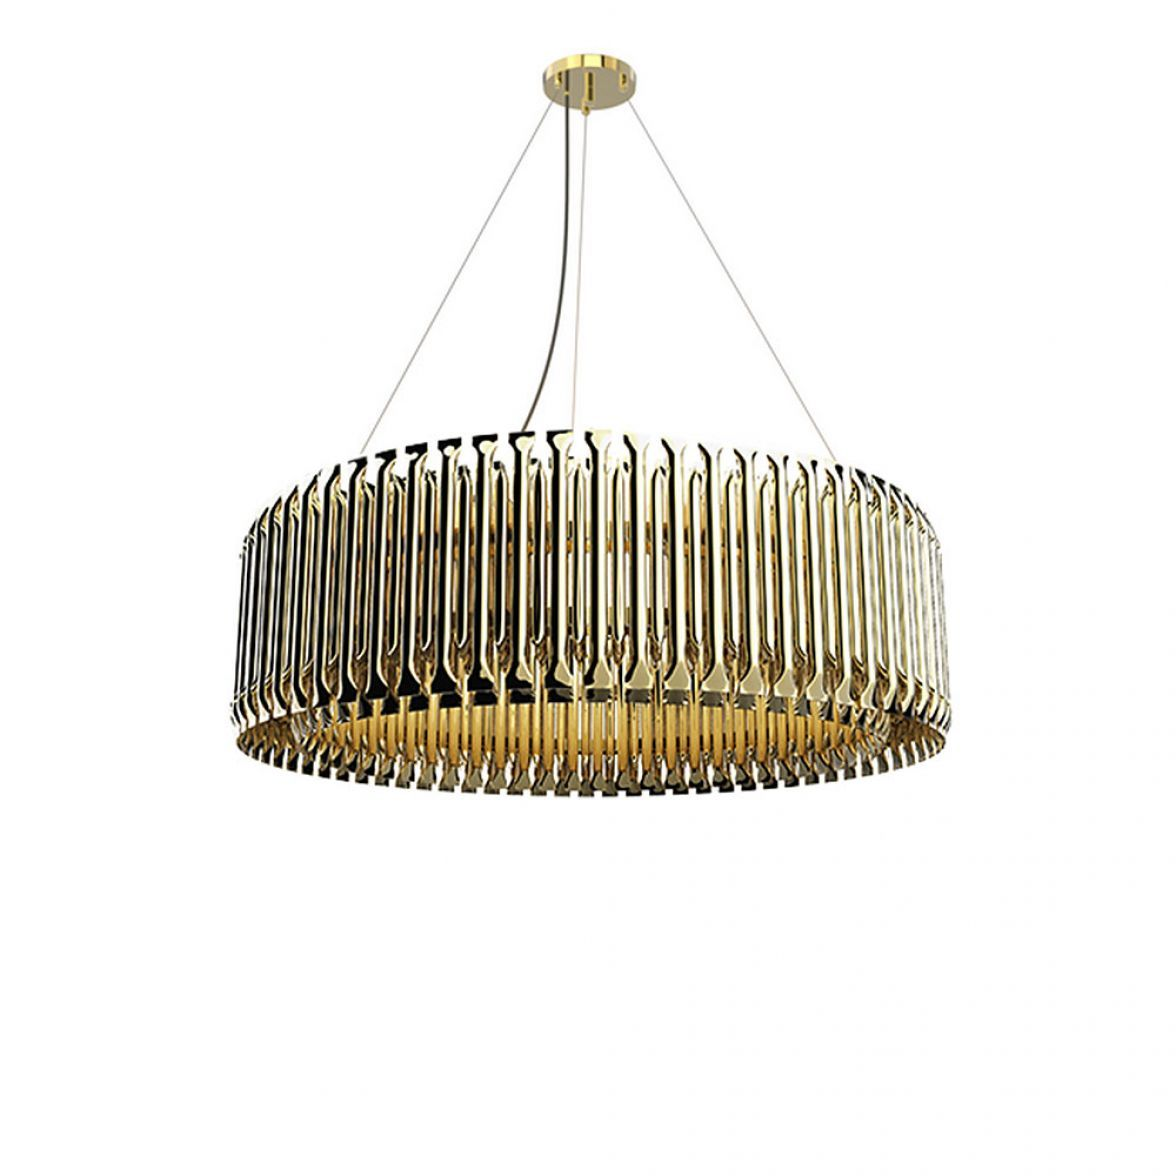 Matheny suspension light